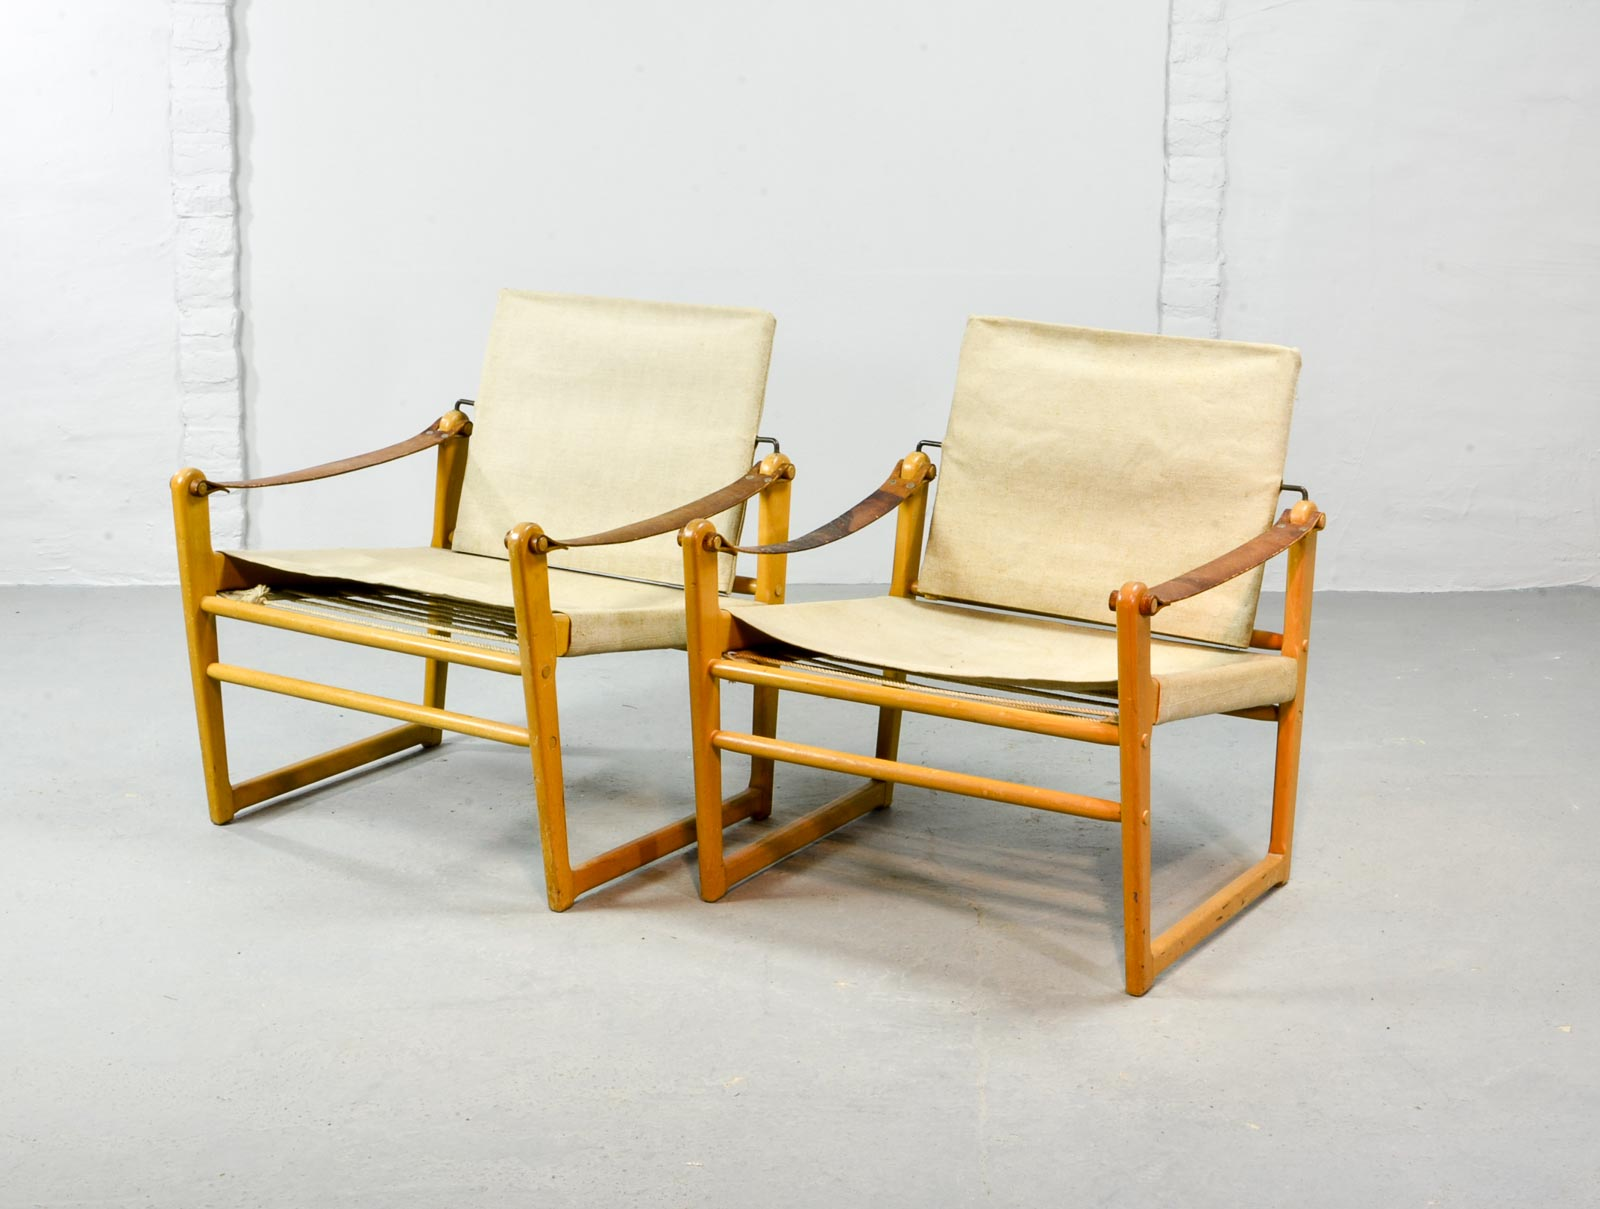 Pair Of Mid Century Safari Chairs Designed By Bengt Ruda For Ikea, 1960s